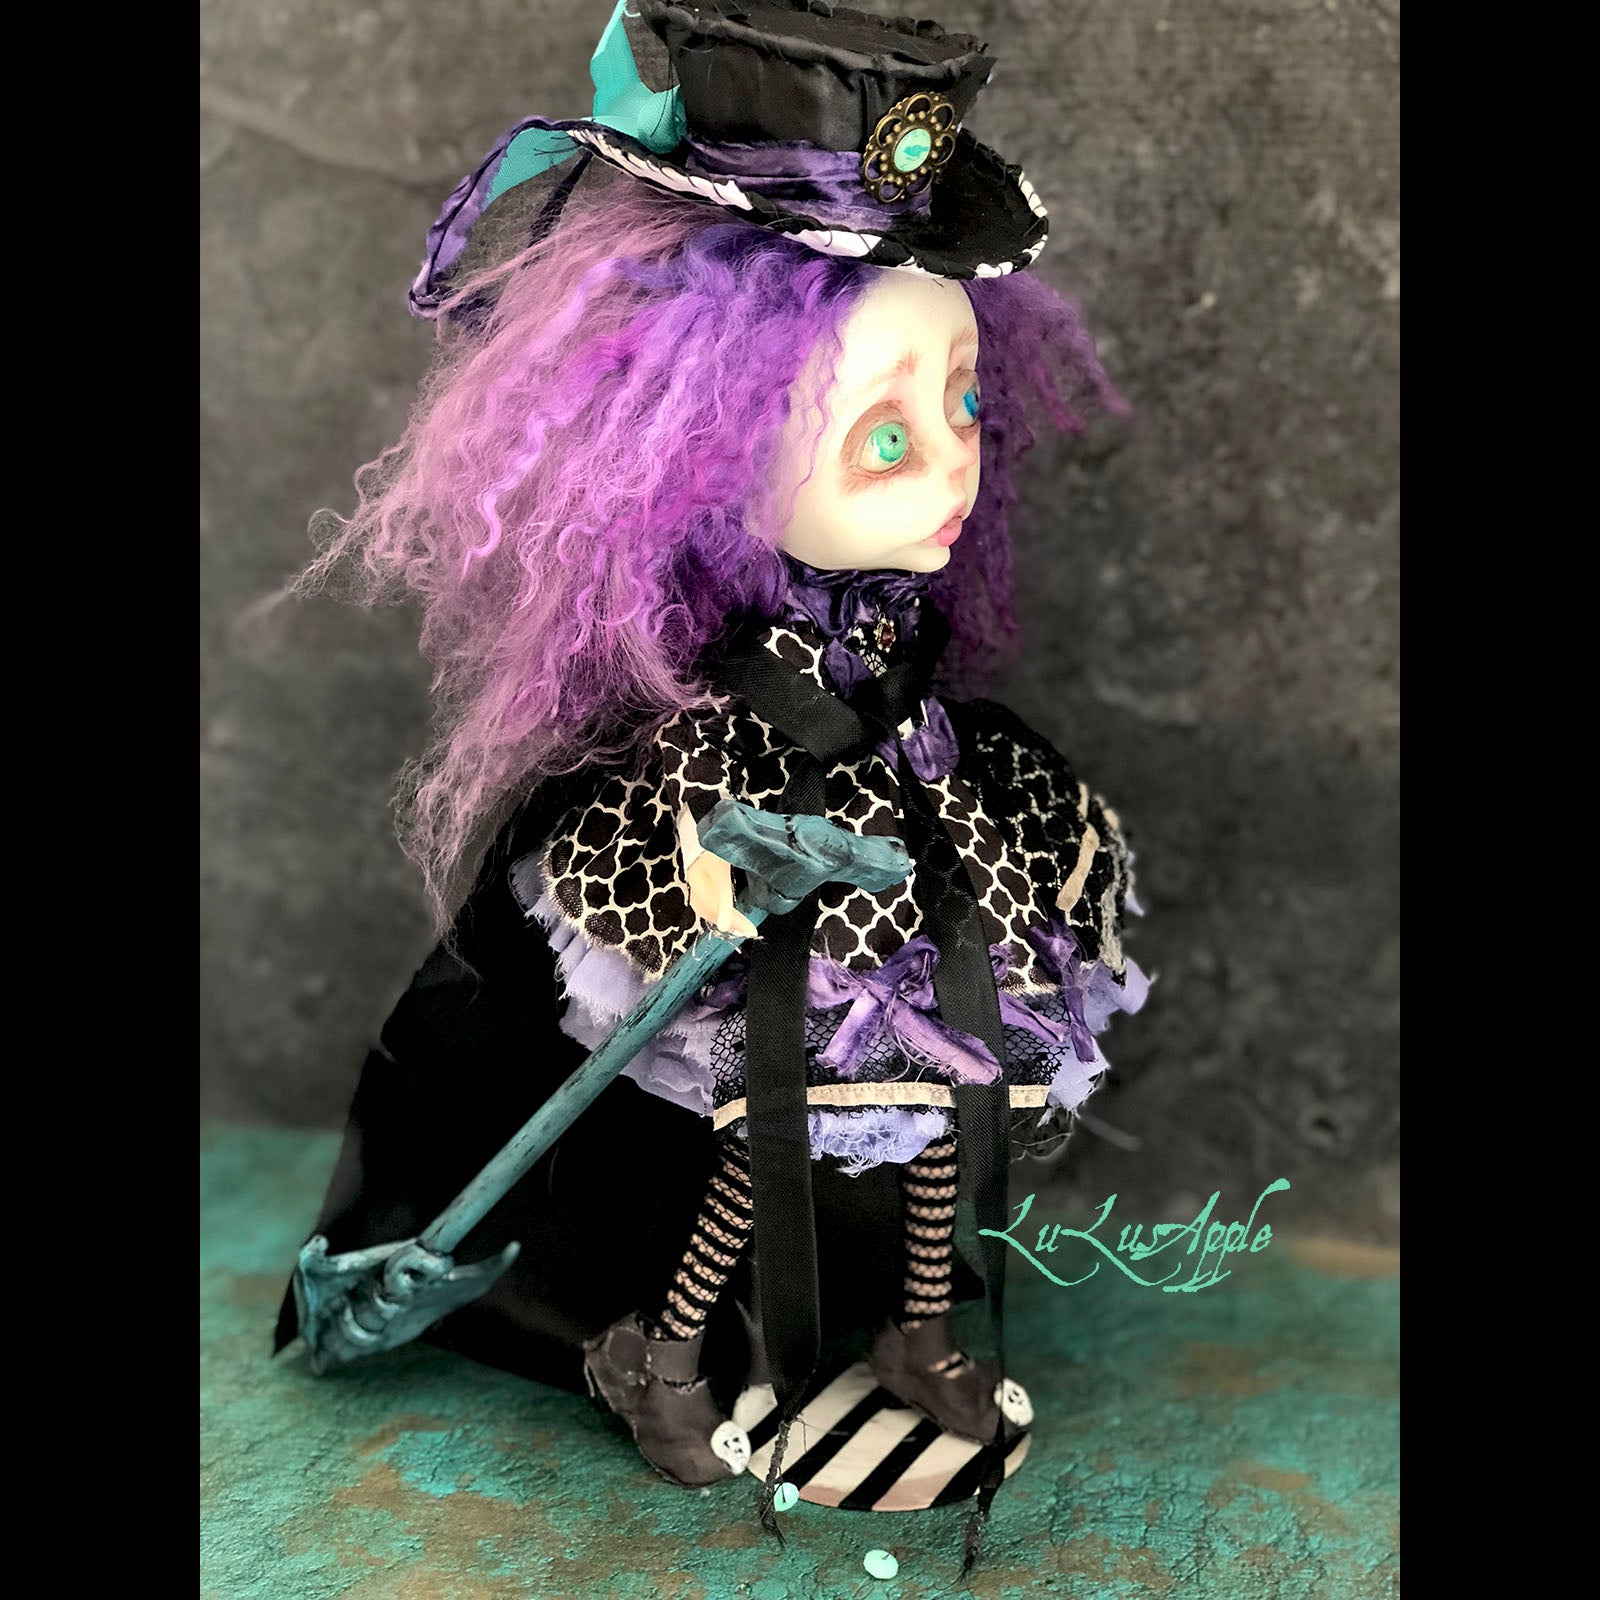 Freya the Grave Digger OOAK LuLusApple Art Doll